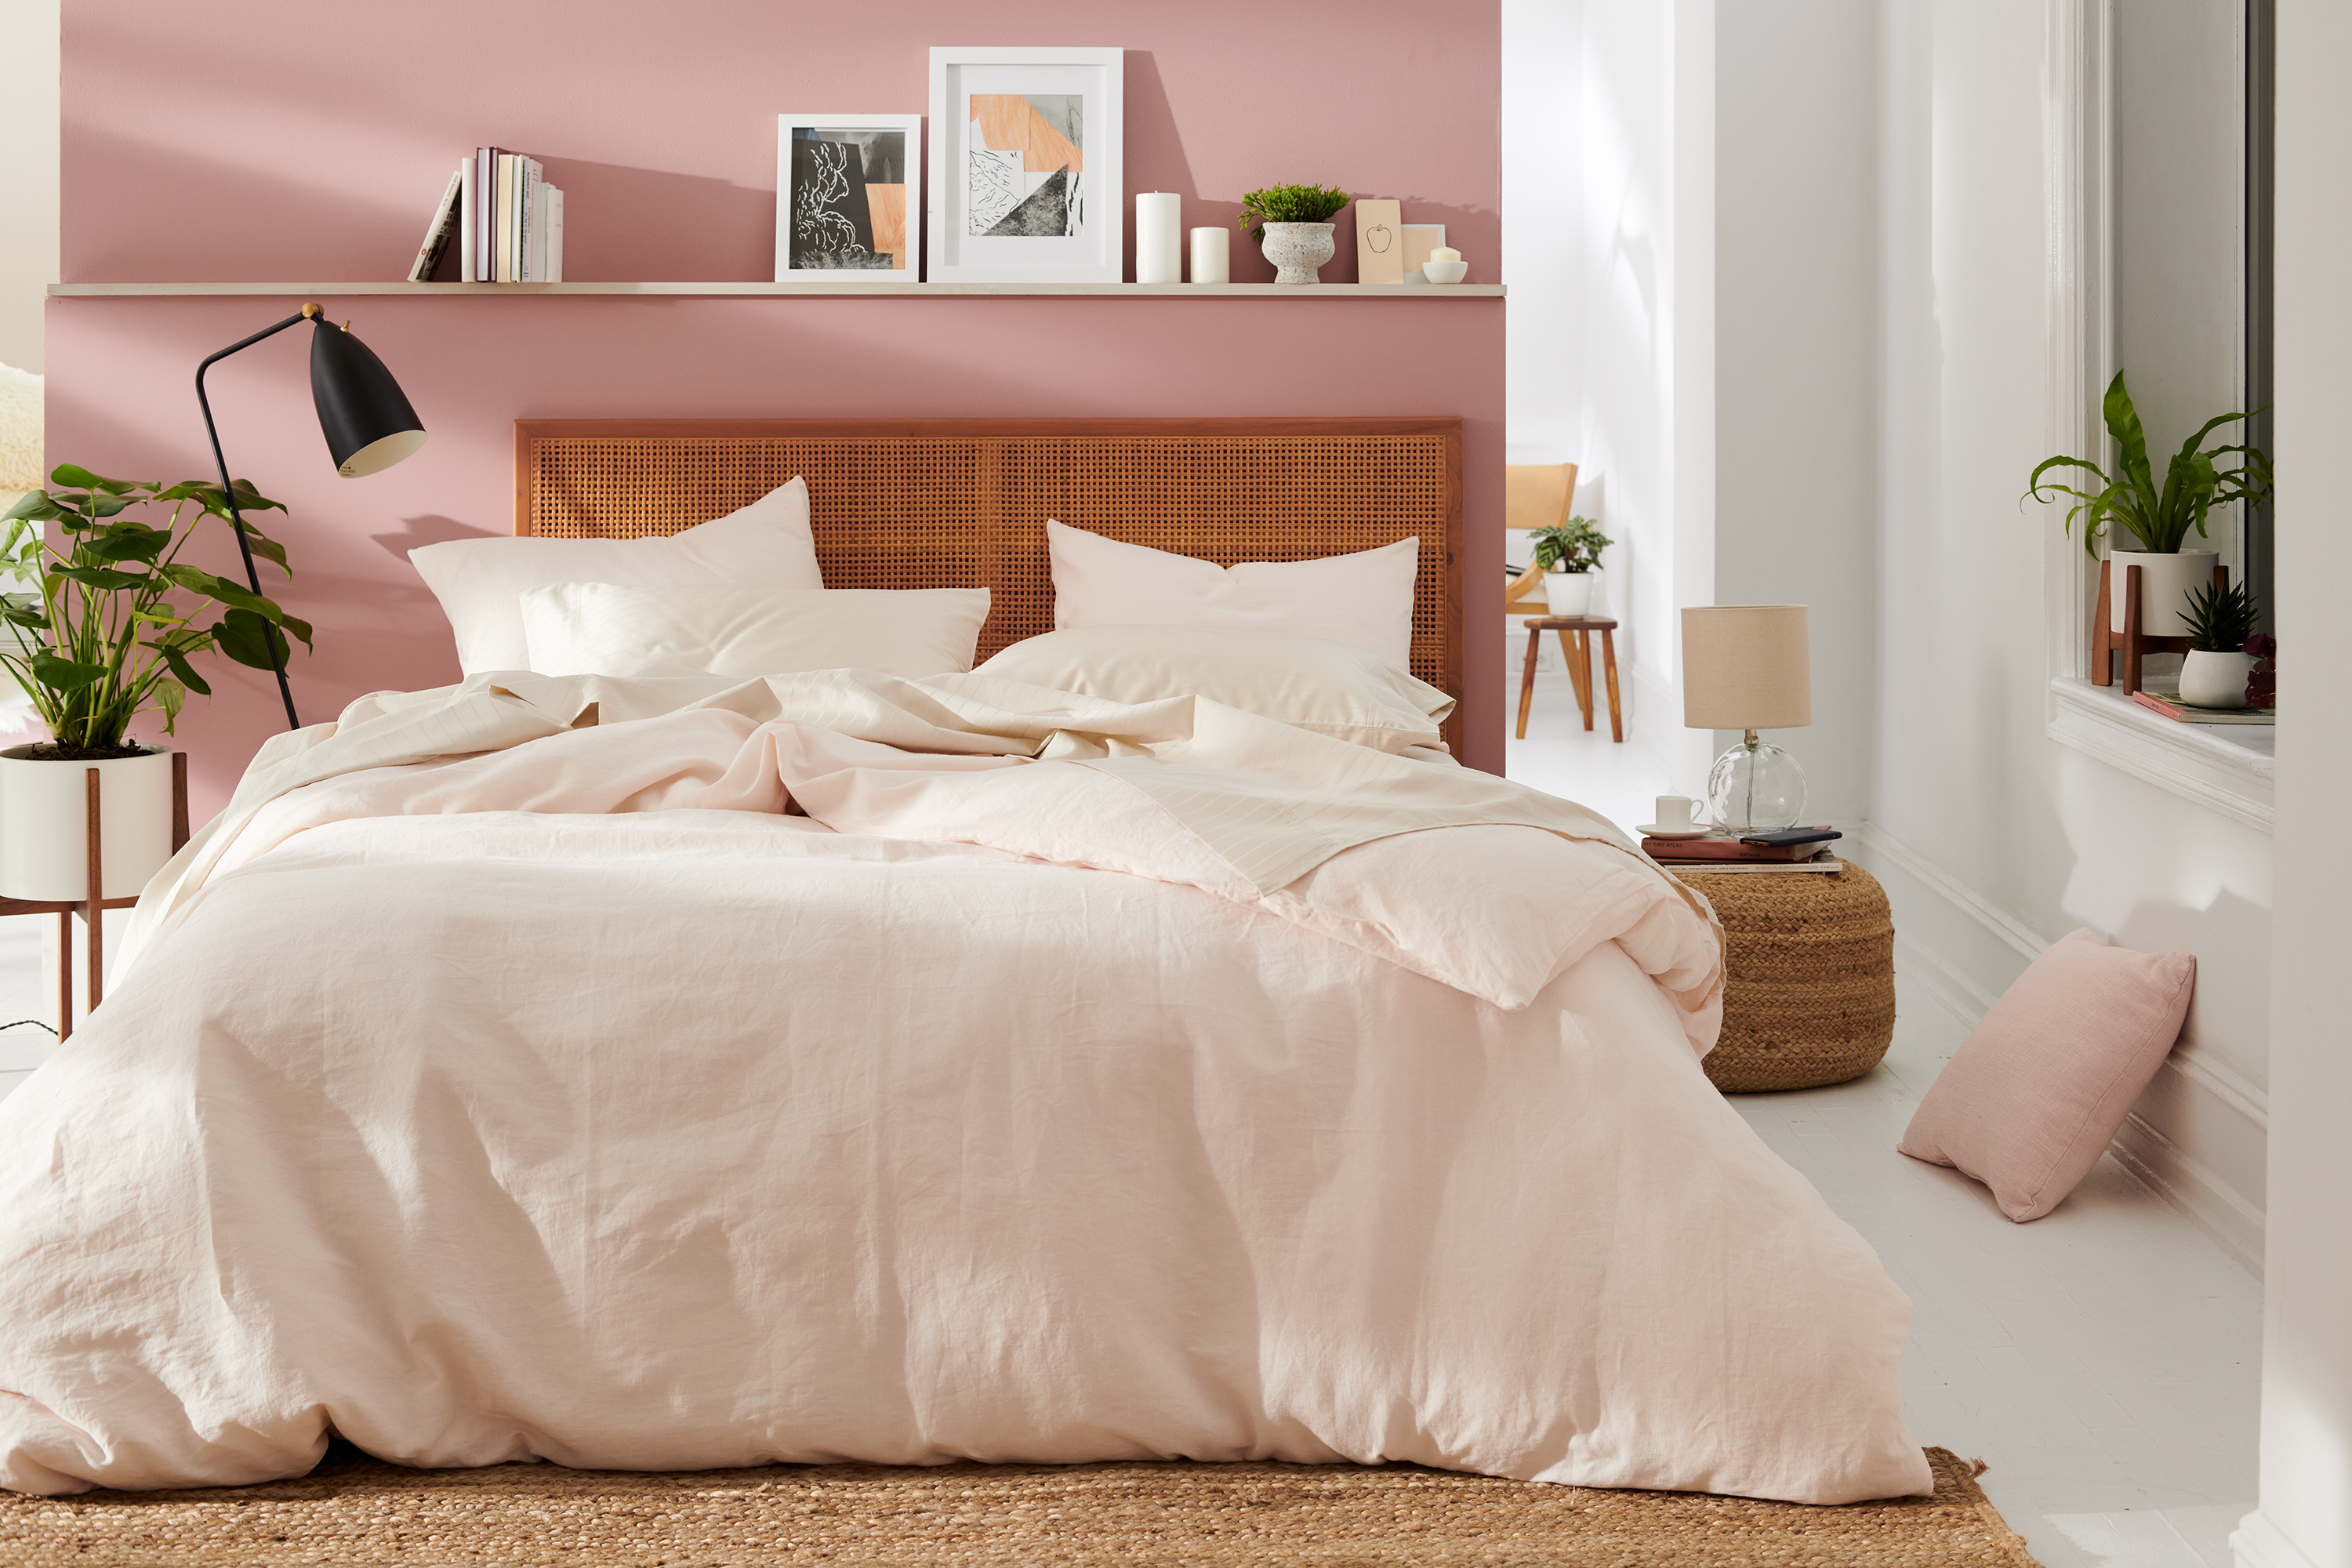 Bed Bath & Beyond introduces first new brand